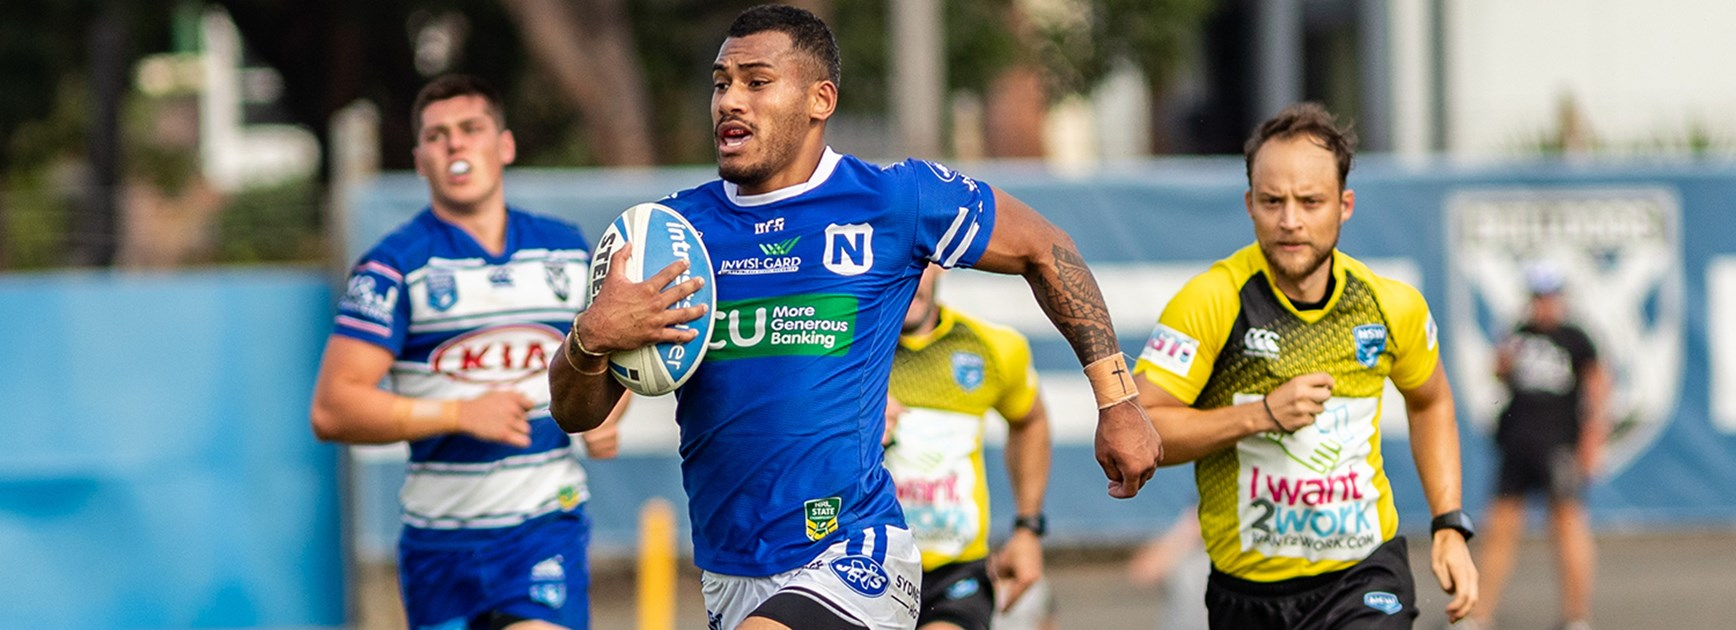 ISP Team List - Jets v Warriors